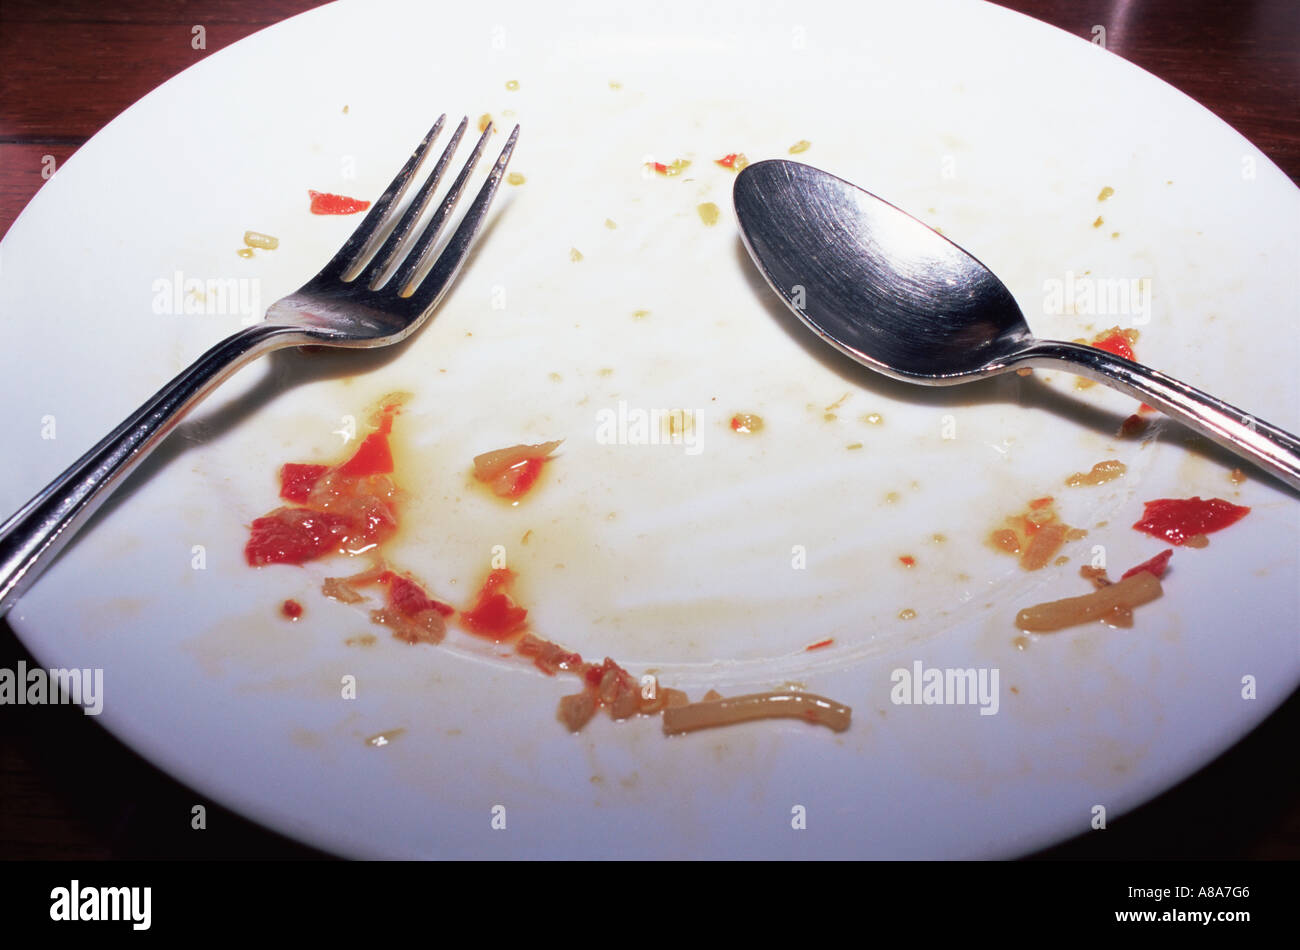 Finished plate of spaghetti - Stock Image